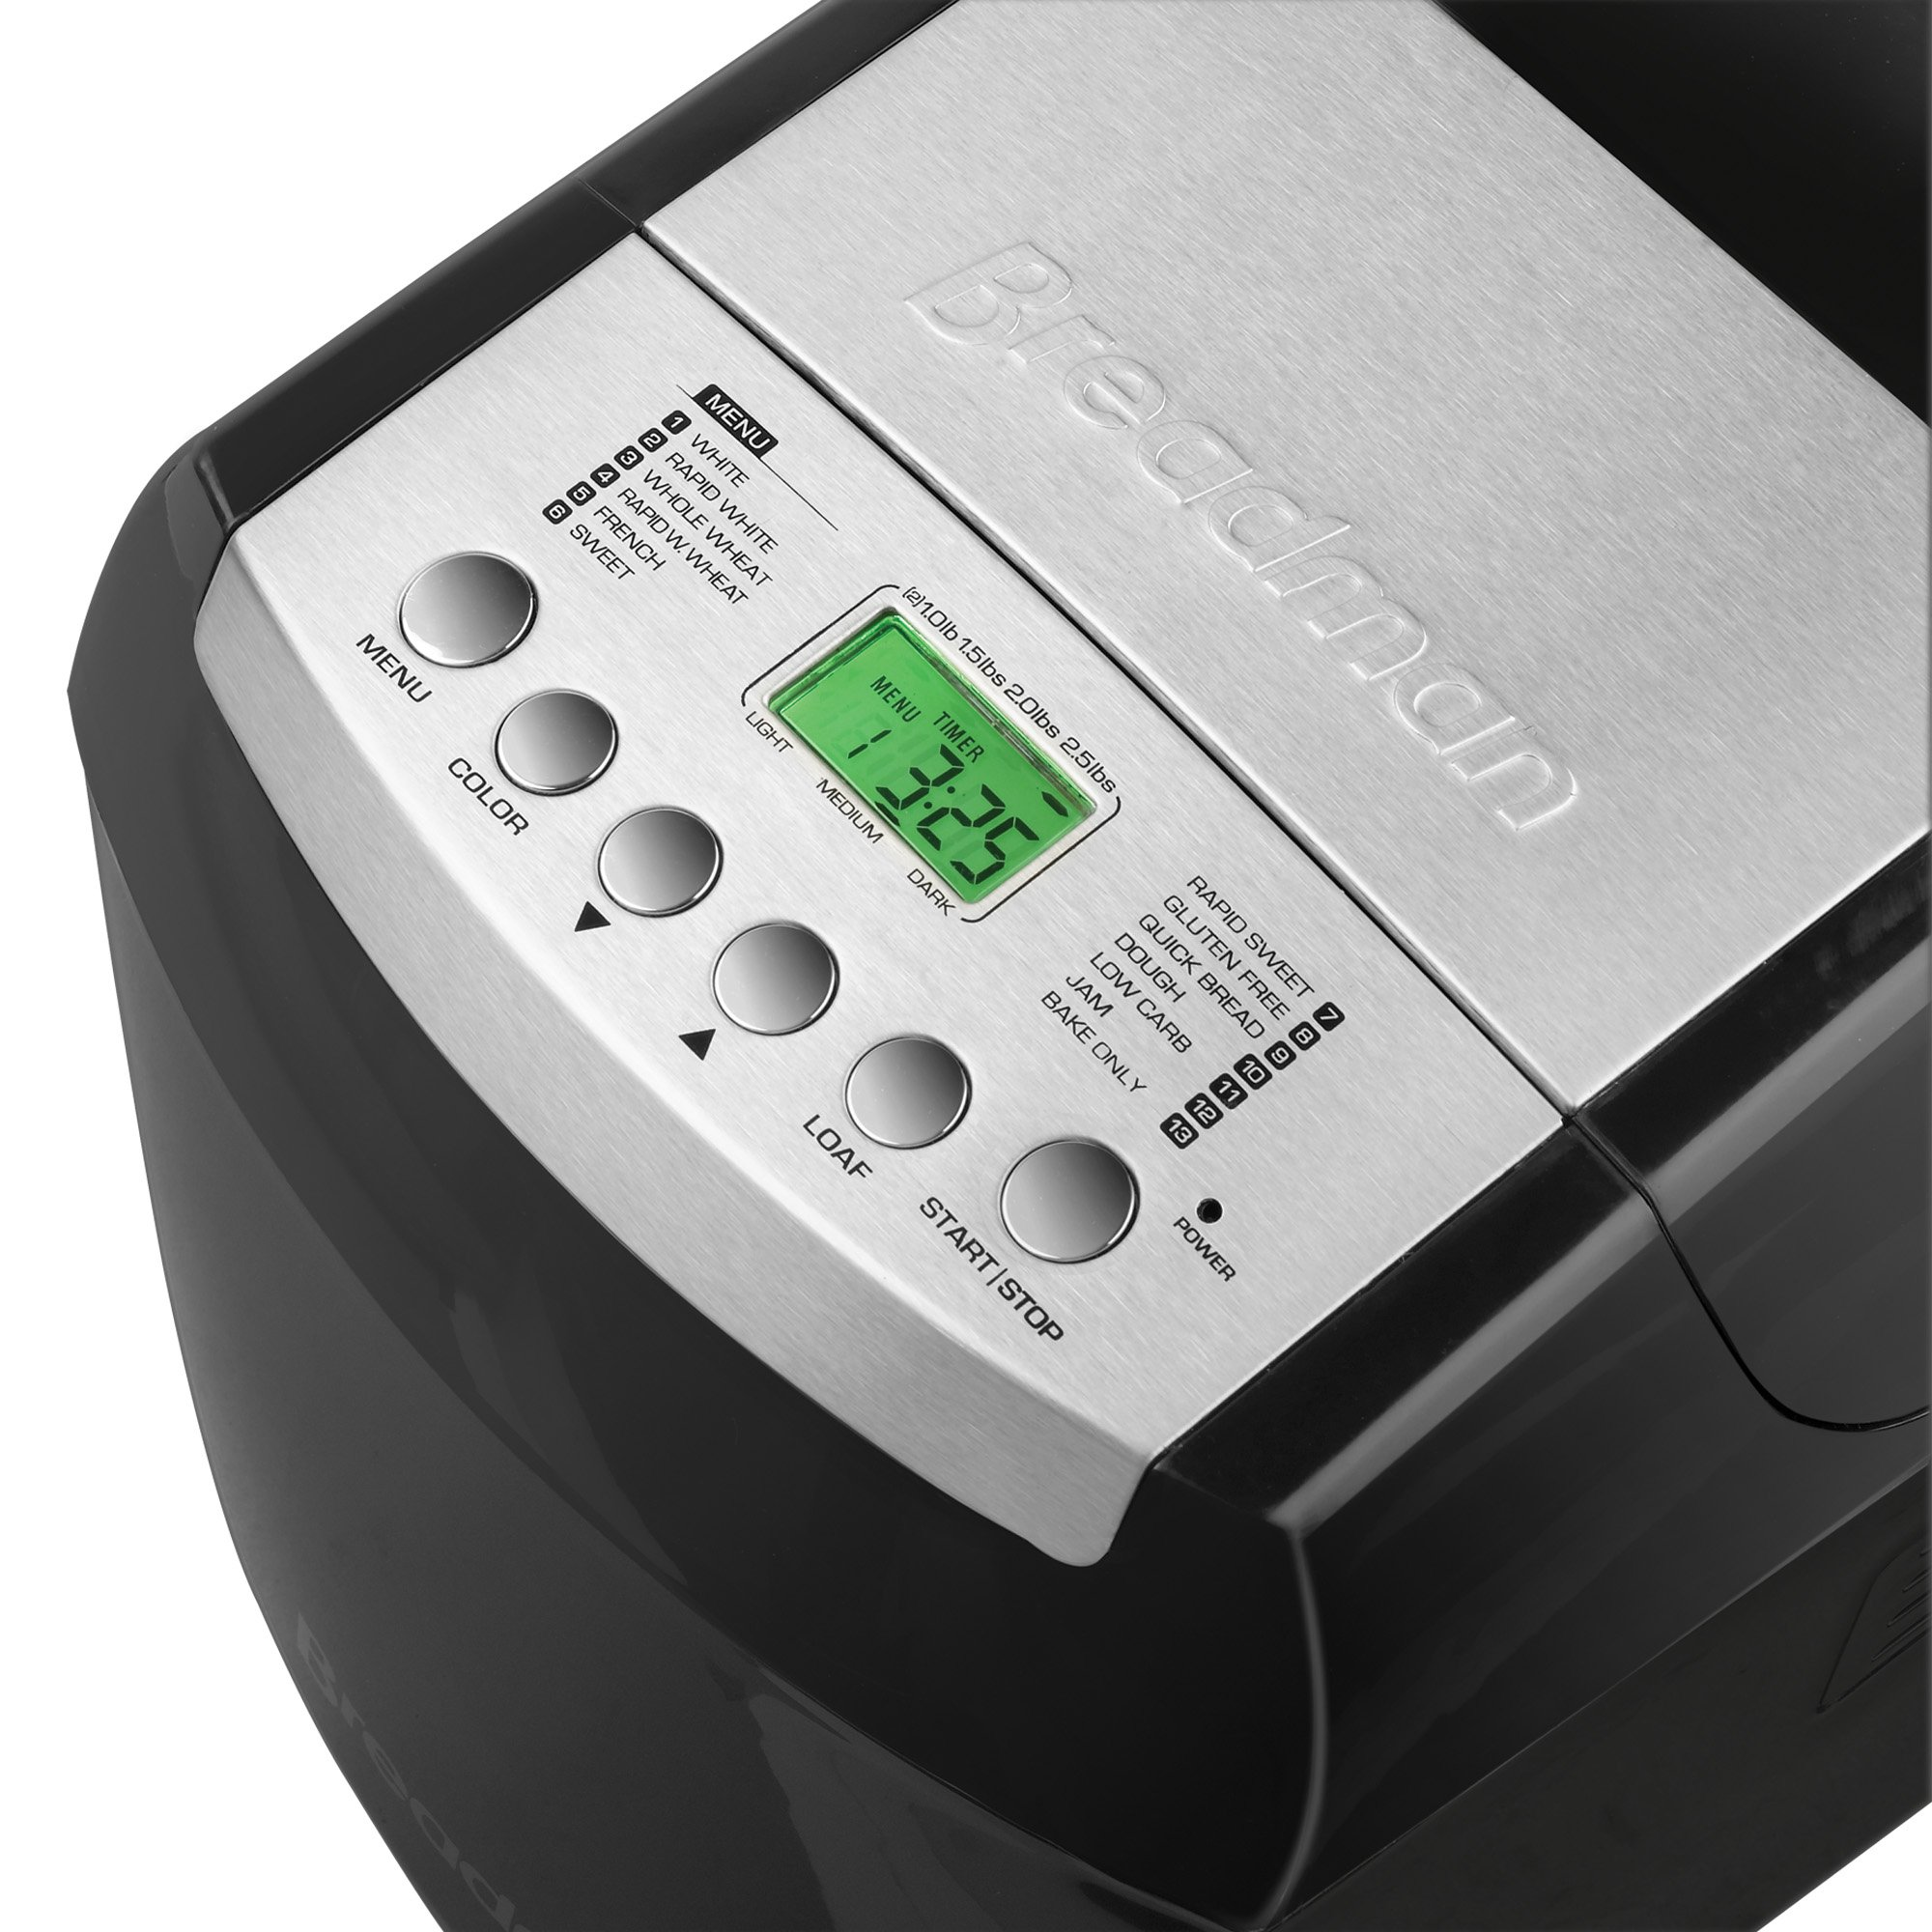 Breadman BK2000B 2-½-Pound Bakery Pro Bread Maker with Collapsible Kneading Paddles and Automatic Fruit and Nut Dispenser by Breadman